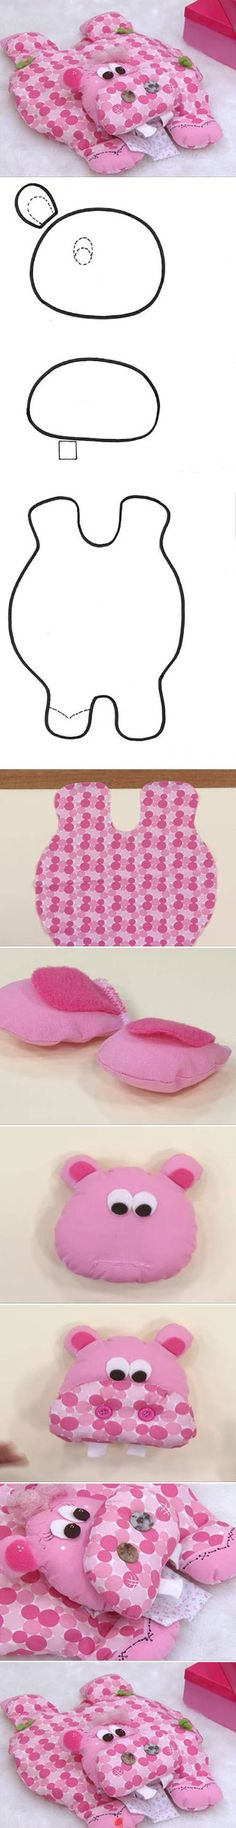 DIY Hippo Pillow diy sew crafts diy crafts sewing kids crafts how to tutorial sewing tutorials sewing crafts crafts for kids Fabric Toys, Fabric Crafts, Sewing Crafts, Sewing Projects, Diy Projects, Animal Projects, Sewing Pillows, Diy Pillows, Pillow Ideas